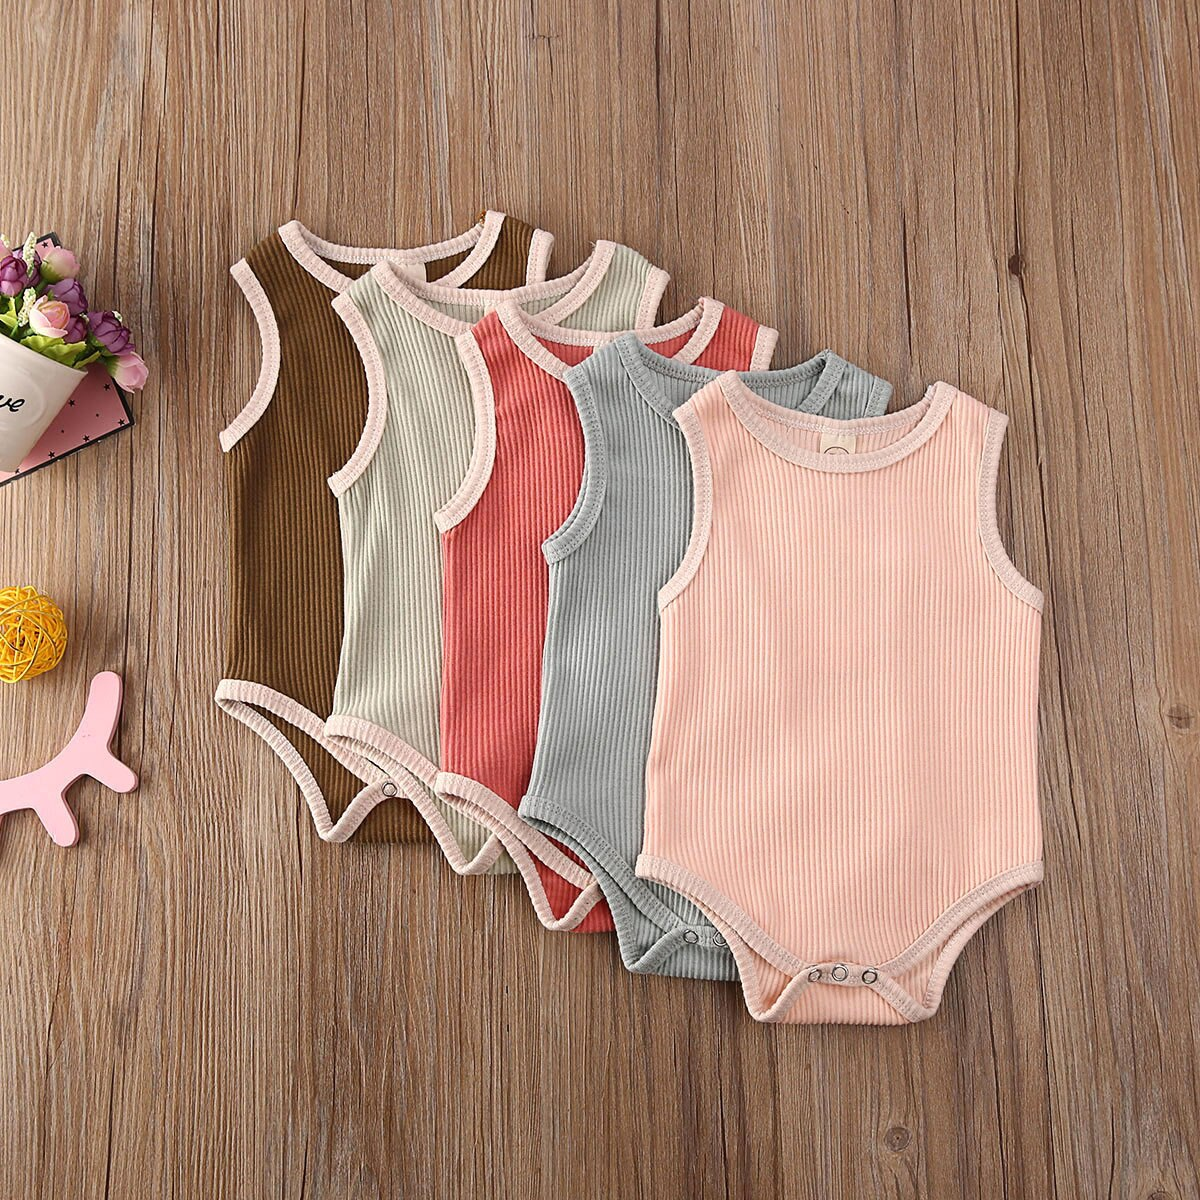 fashion 3pcs baby girl clothes cotton o neck sleeveless romper shorts clothing set for 6 24m new bron baby girl summer set Newest Baby Summer Clothing 0-24M Newborn Infant Toddler Baby Girl Sleeveless Solid Romper Jumpsuit Cotton Blend Outfit Clothing